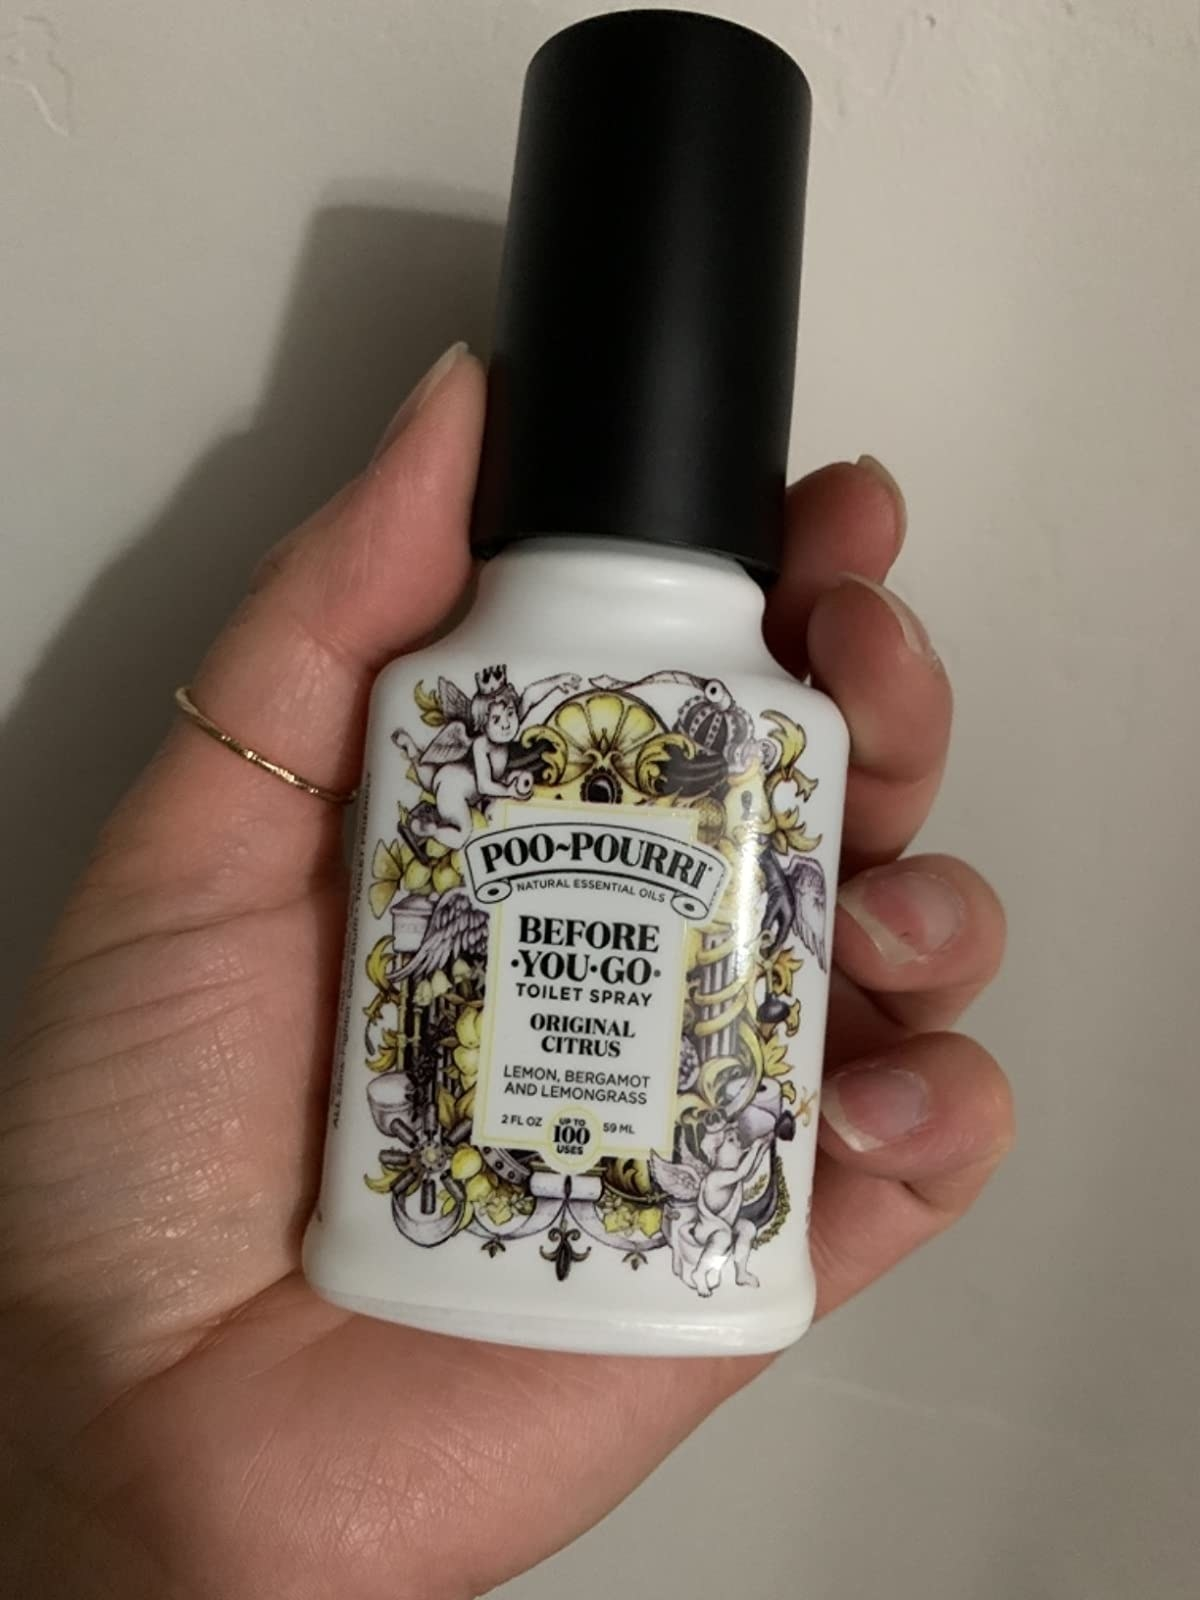 image of a reviewer's hand holding the 2 oz bottle of citrus poo-pourri